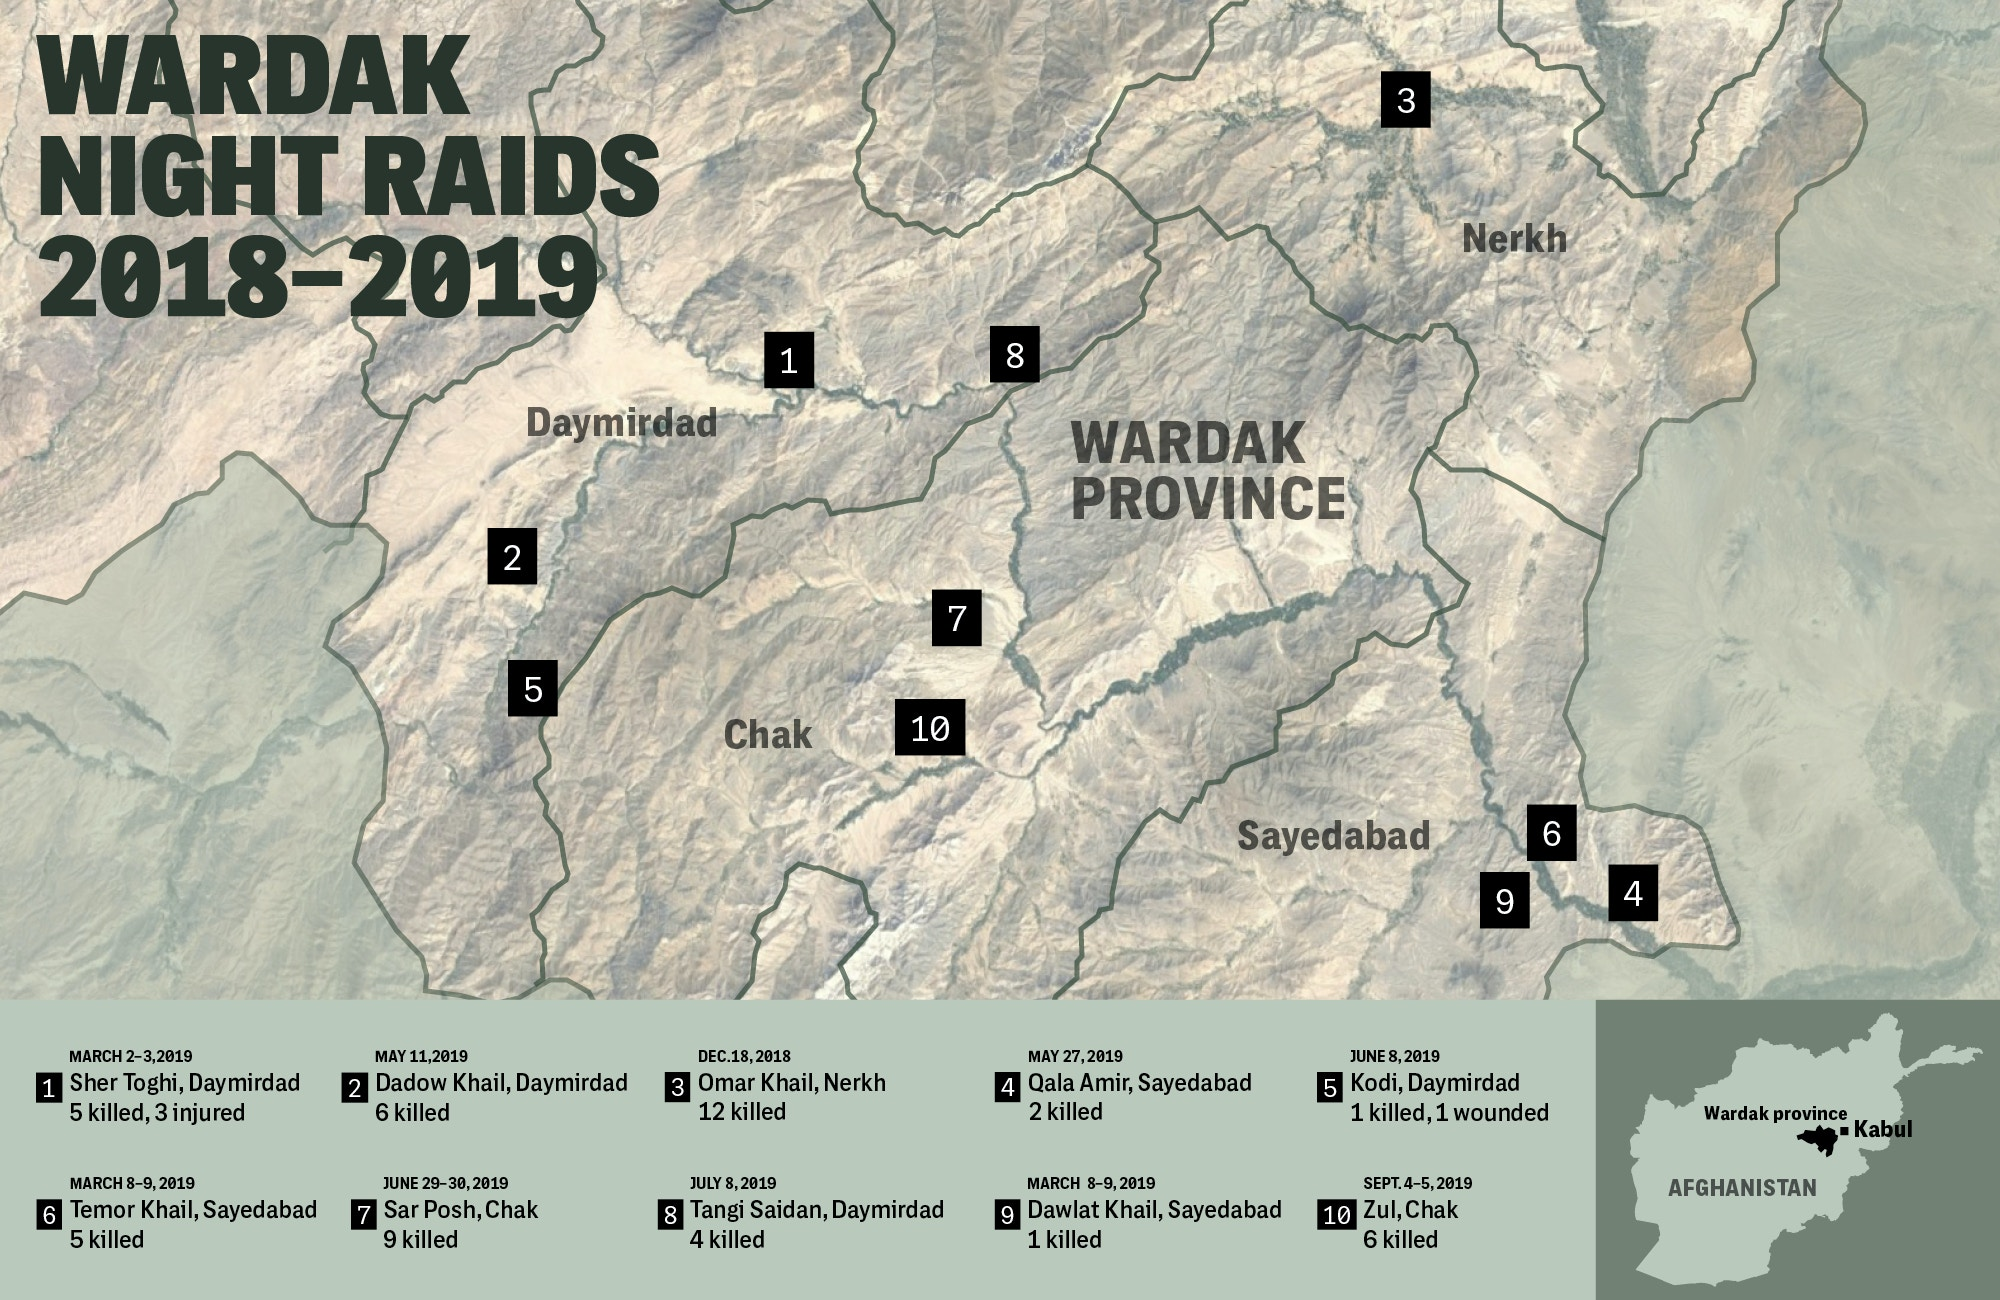 A map shows the locations of at least 10 previously undocumented night raids in the central Afghan province of Wardak. Beginning in December 2018 and continuing for at least a year, Afghan operatives believed to belong to an elite CIA-trained paramilitary unit known as 01, in partnership with U.S. special operations forces and air power, unleashed a campaign of terror against civilians.